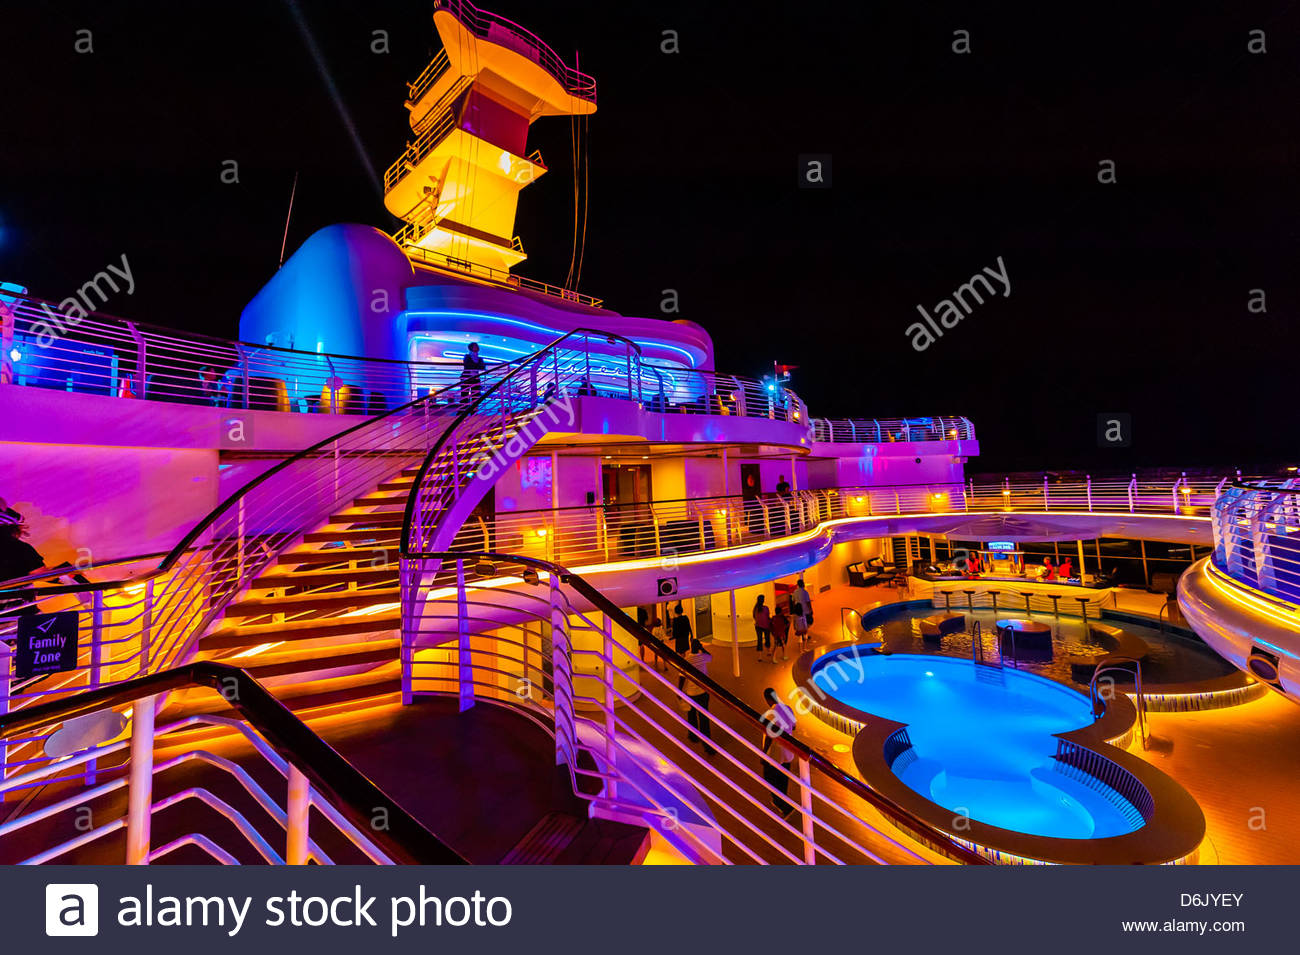 On Deck On The New Disney Dream Cruise Ship Disney Cruise Line Stock Photo Alamy